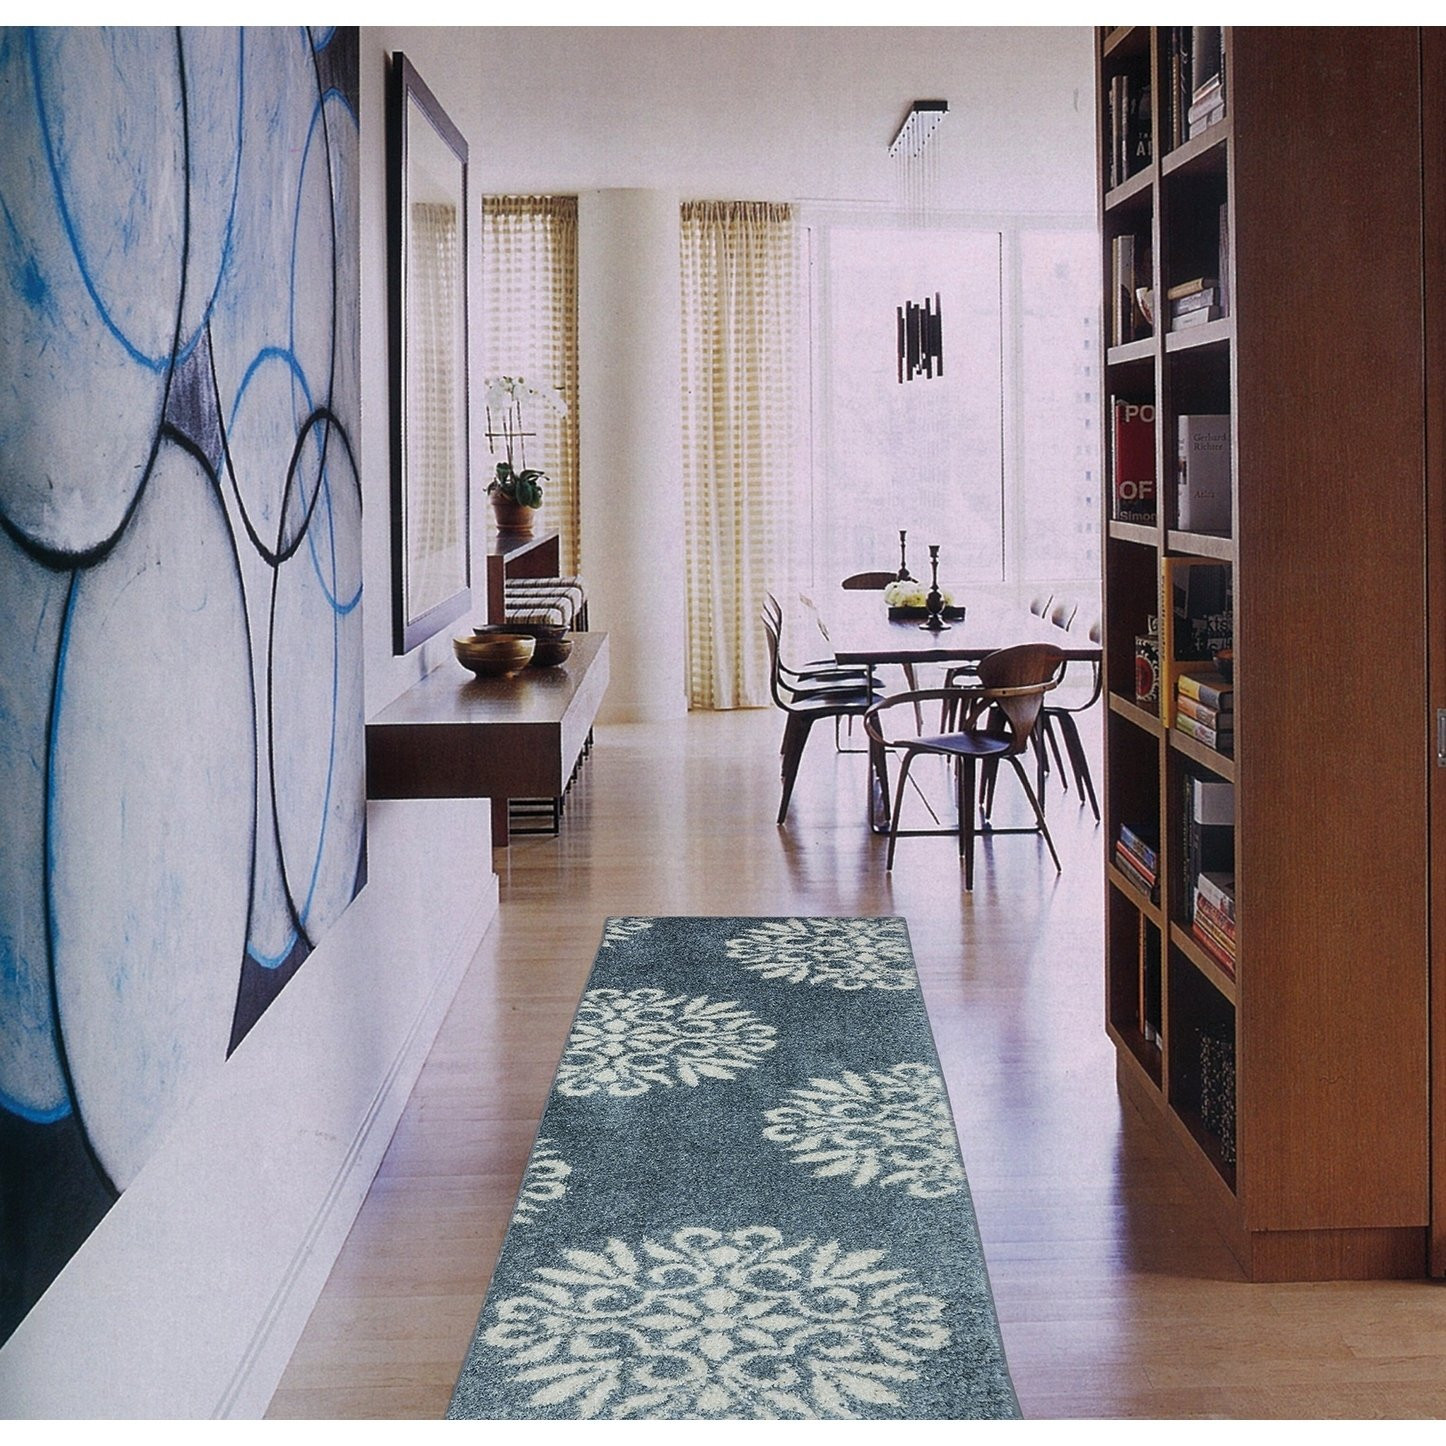 mohawk hardwood flooring care of shop mohawk home huxley exploded medallions area rug 34 x 56 within shop mohawk home huxley exploded medallions area rug 34 x 56 on sale free shipping today overstock com 9157573